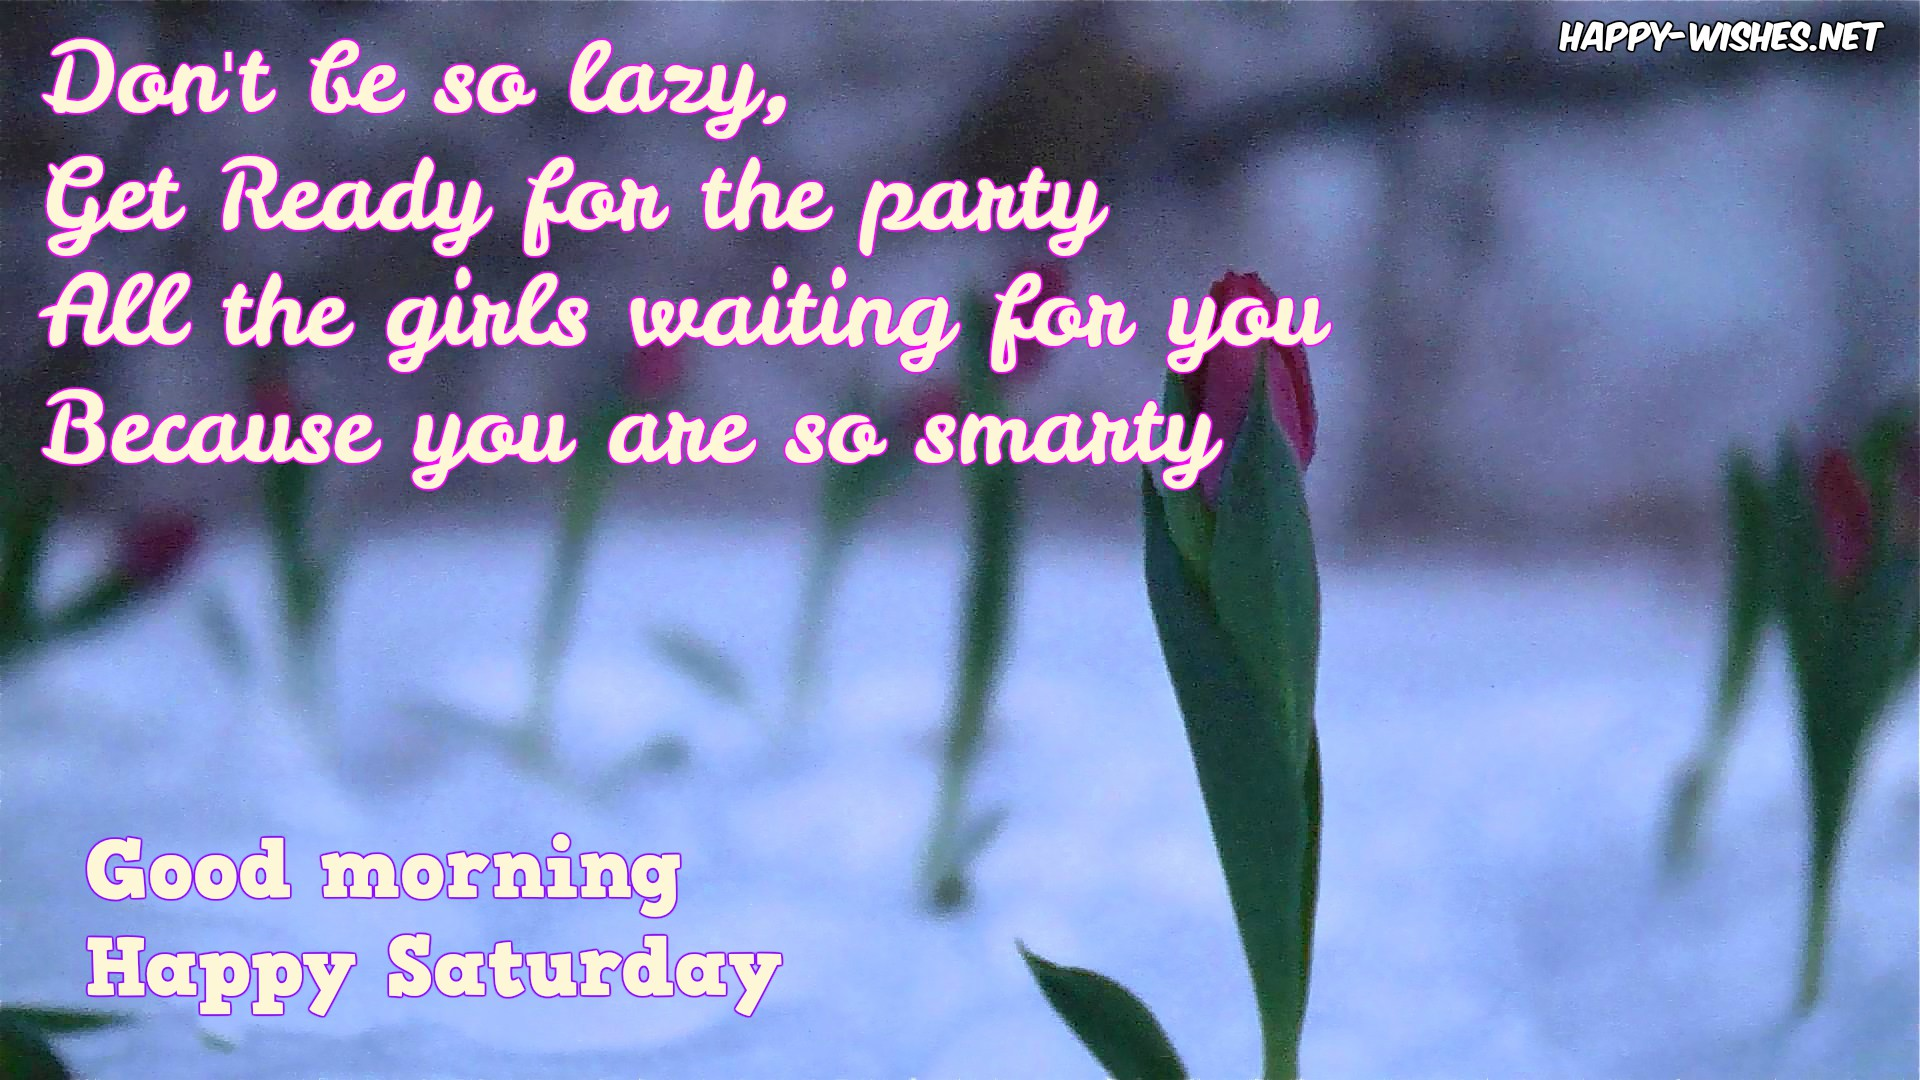 Morning Wishes For Saturday thumbnail